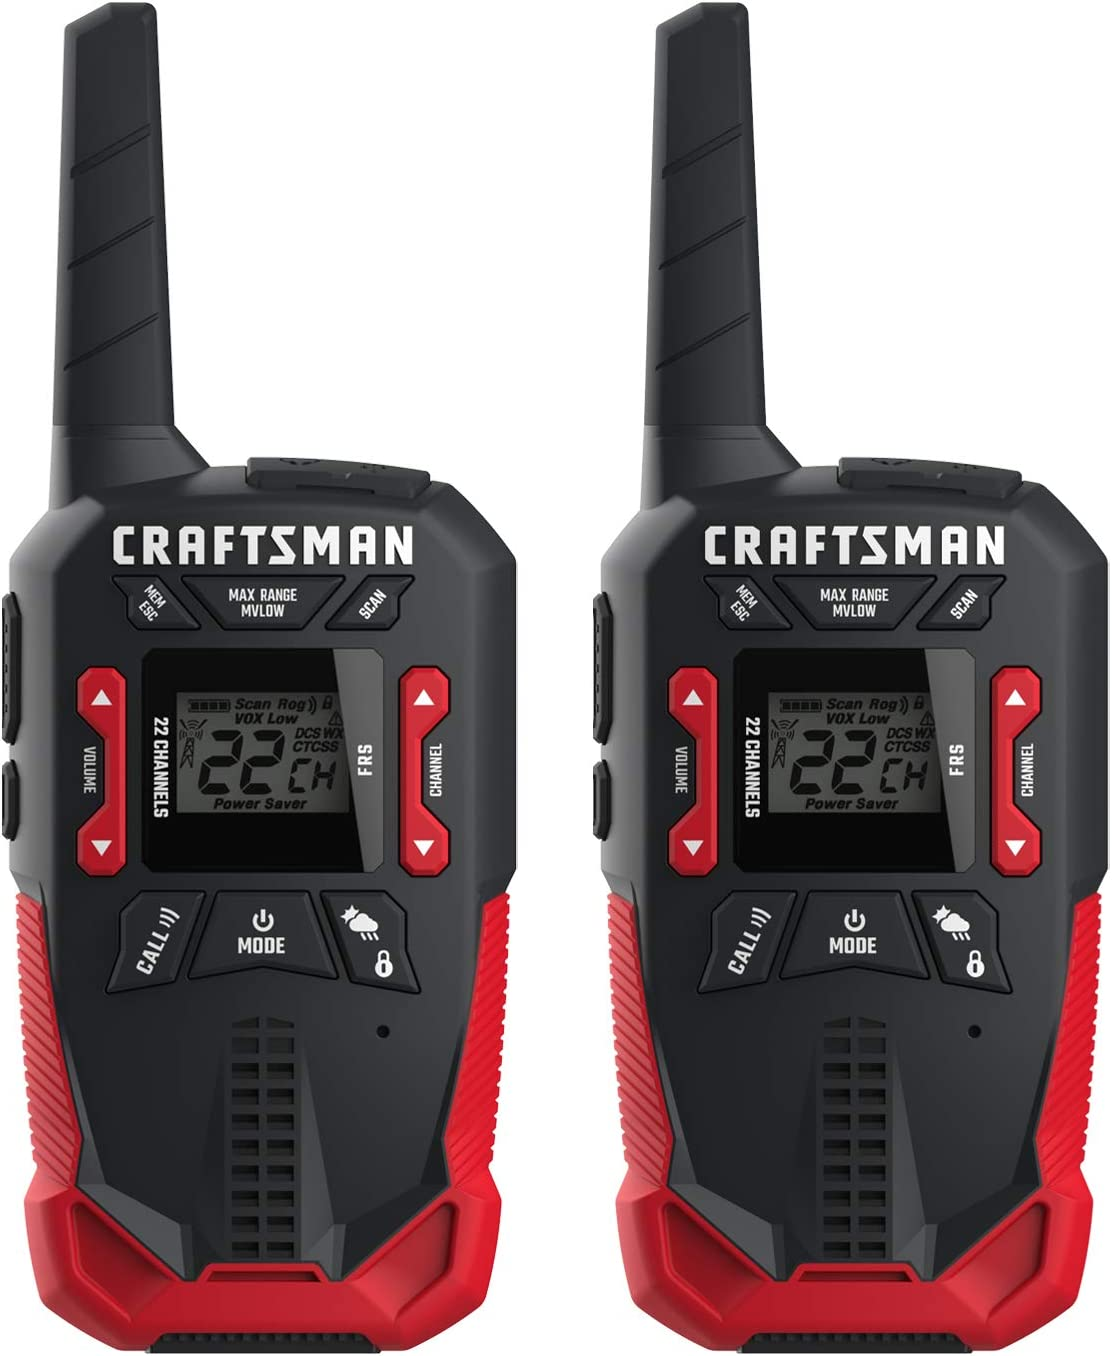 CRAFTSMAN 32-Mile Long Range Walkie Talkies for Adults - Weather Resistant, Rechargeable Two Way Radios with VOX - CMXZRAZF668 (2 Pack)